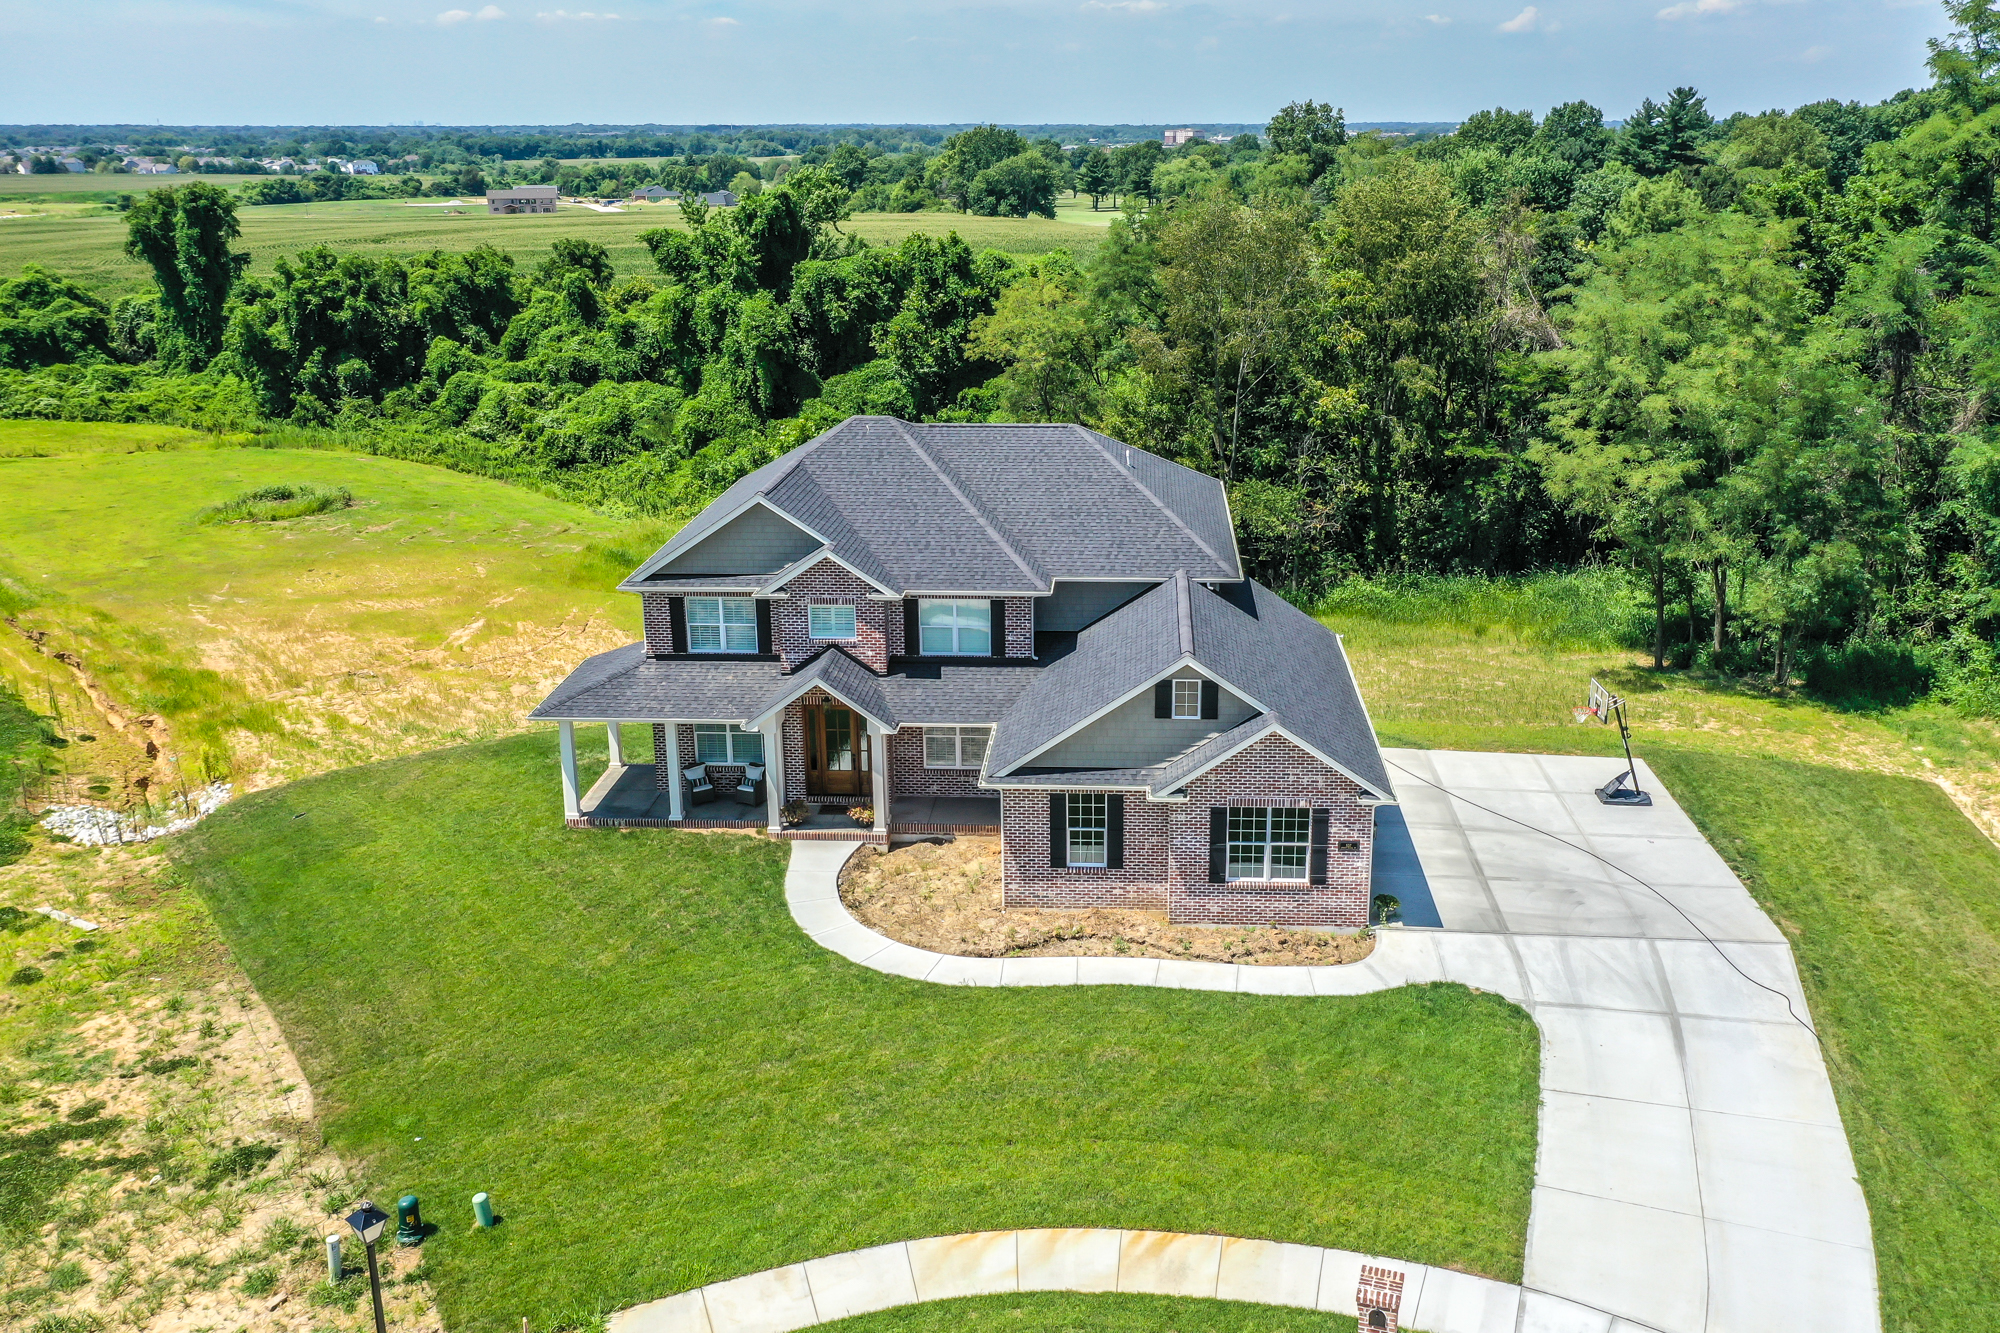 New_Construction_Homes_For_Sale_Shiloh_Illinois_Near_Scott_AFB-13.jpg